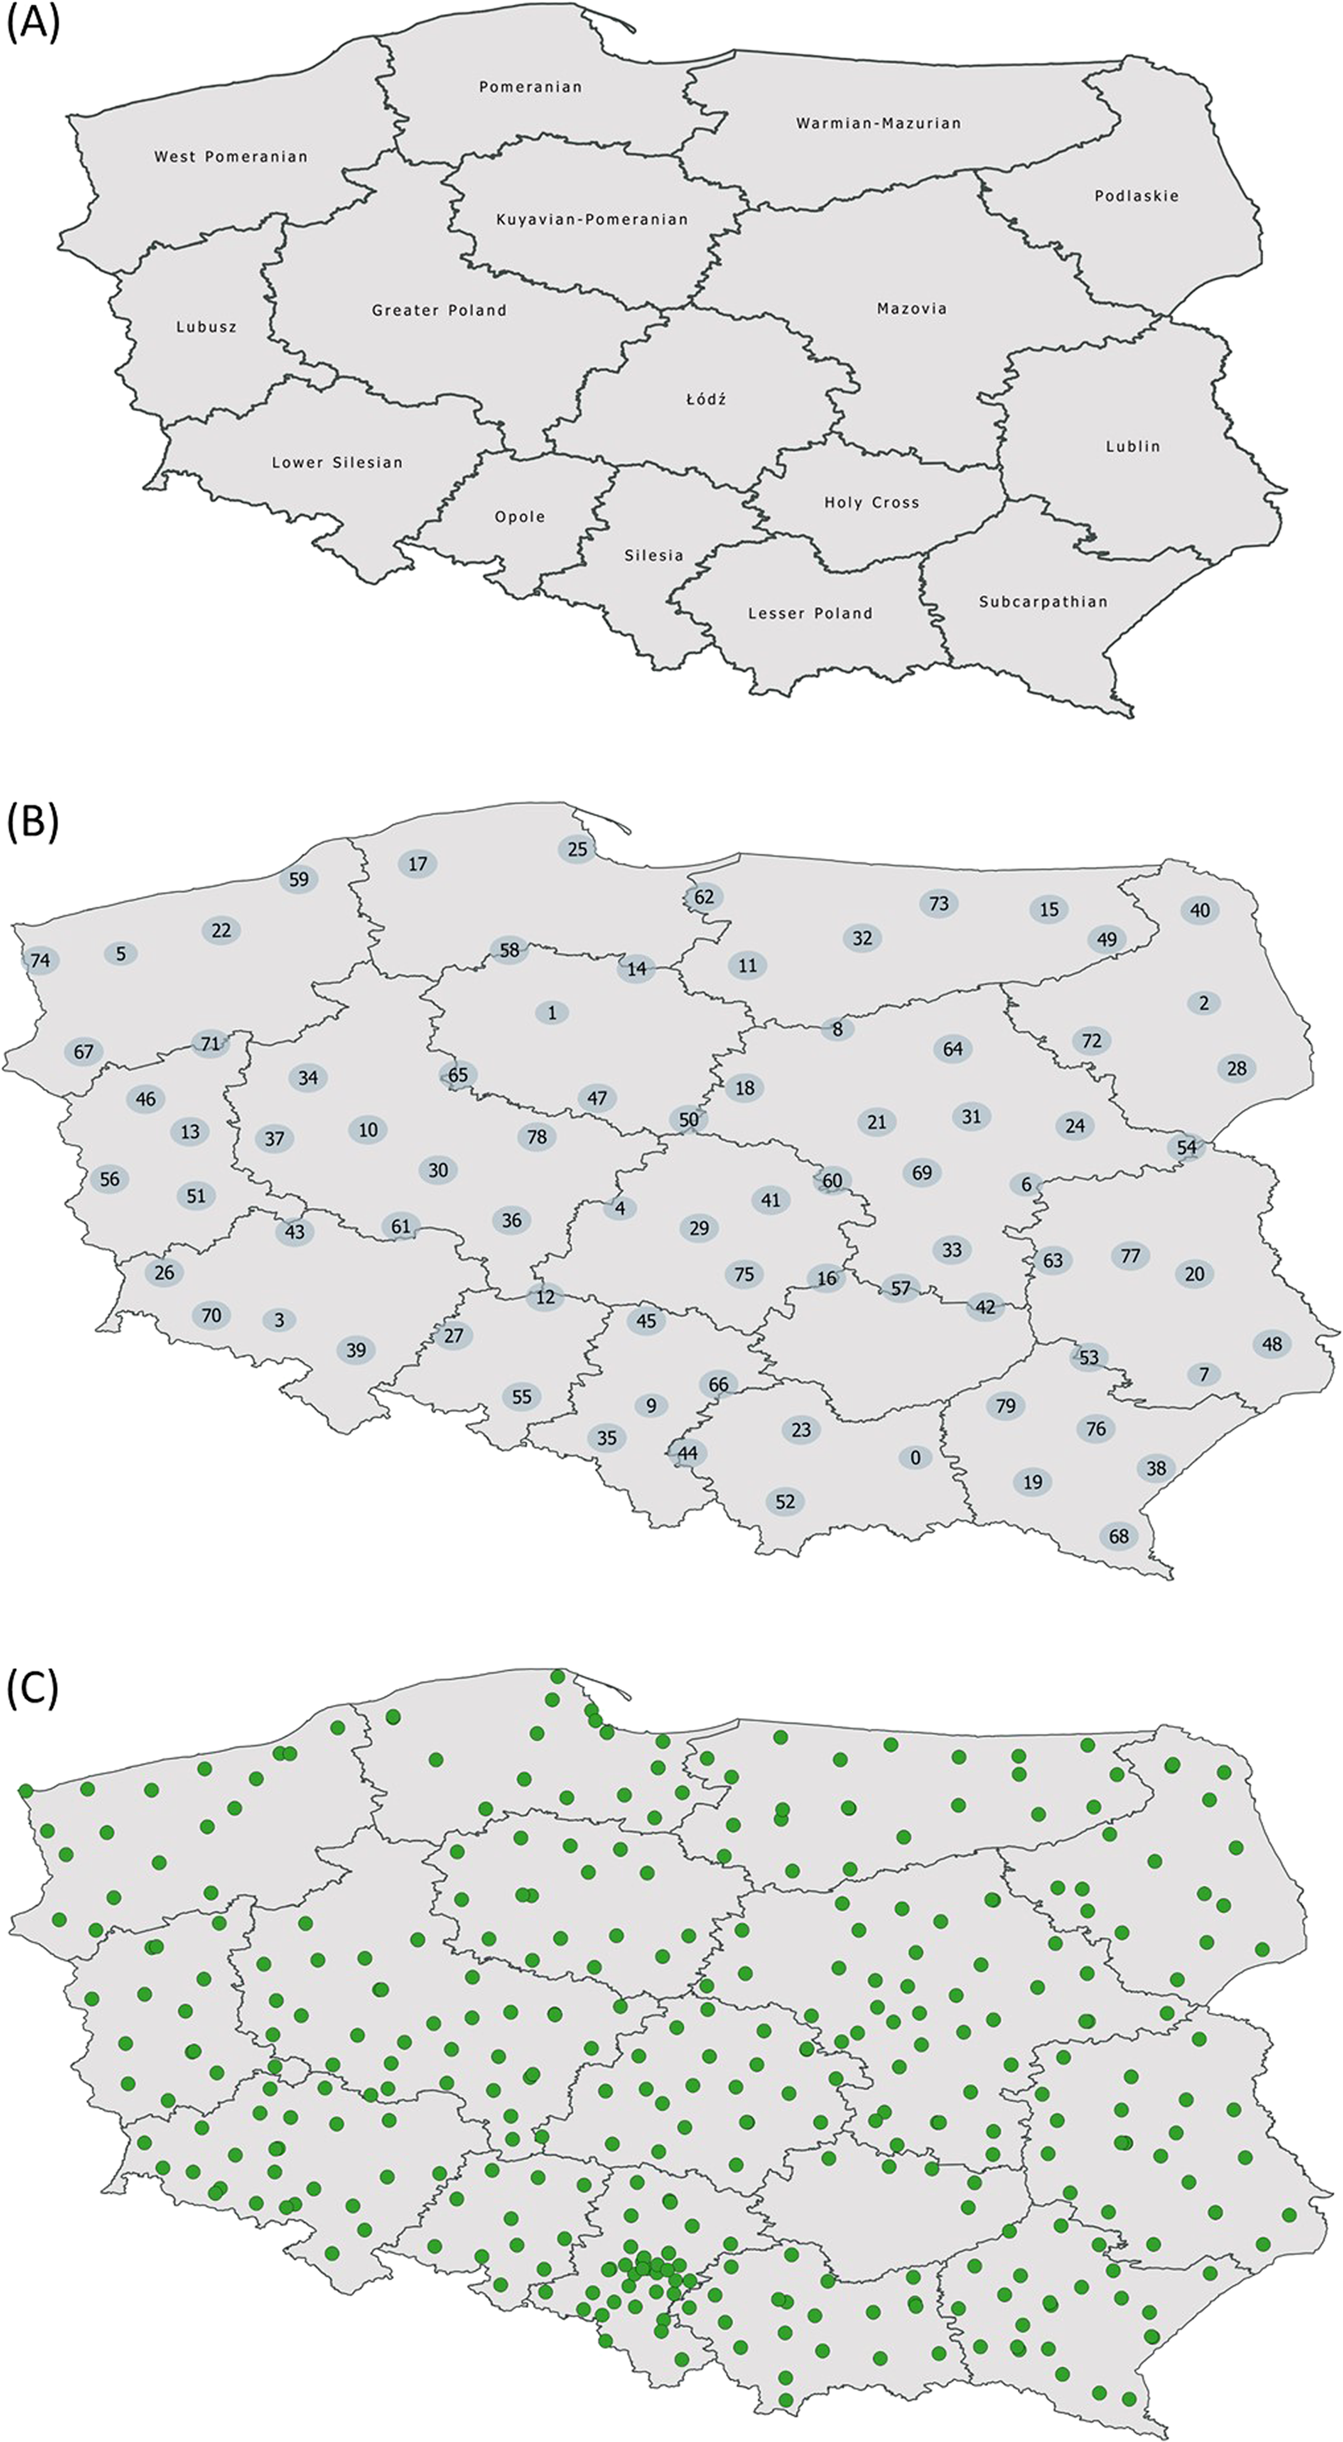 Mitochondrial DNA variability of the Polish population